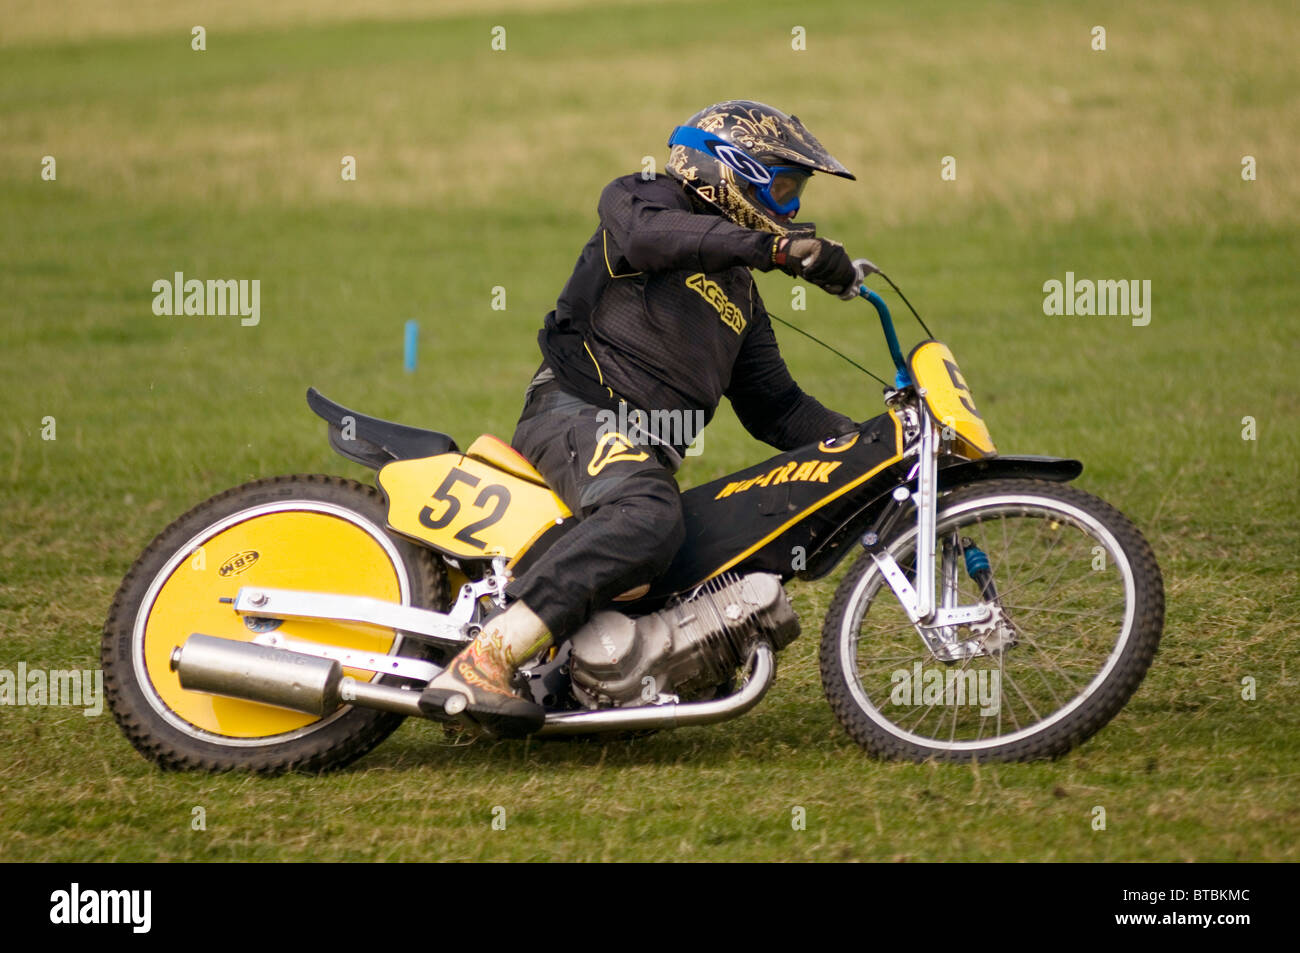 grass track speedway bike at speed - Stock Image